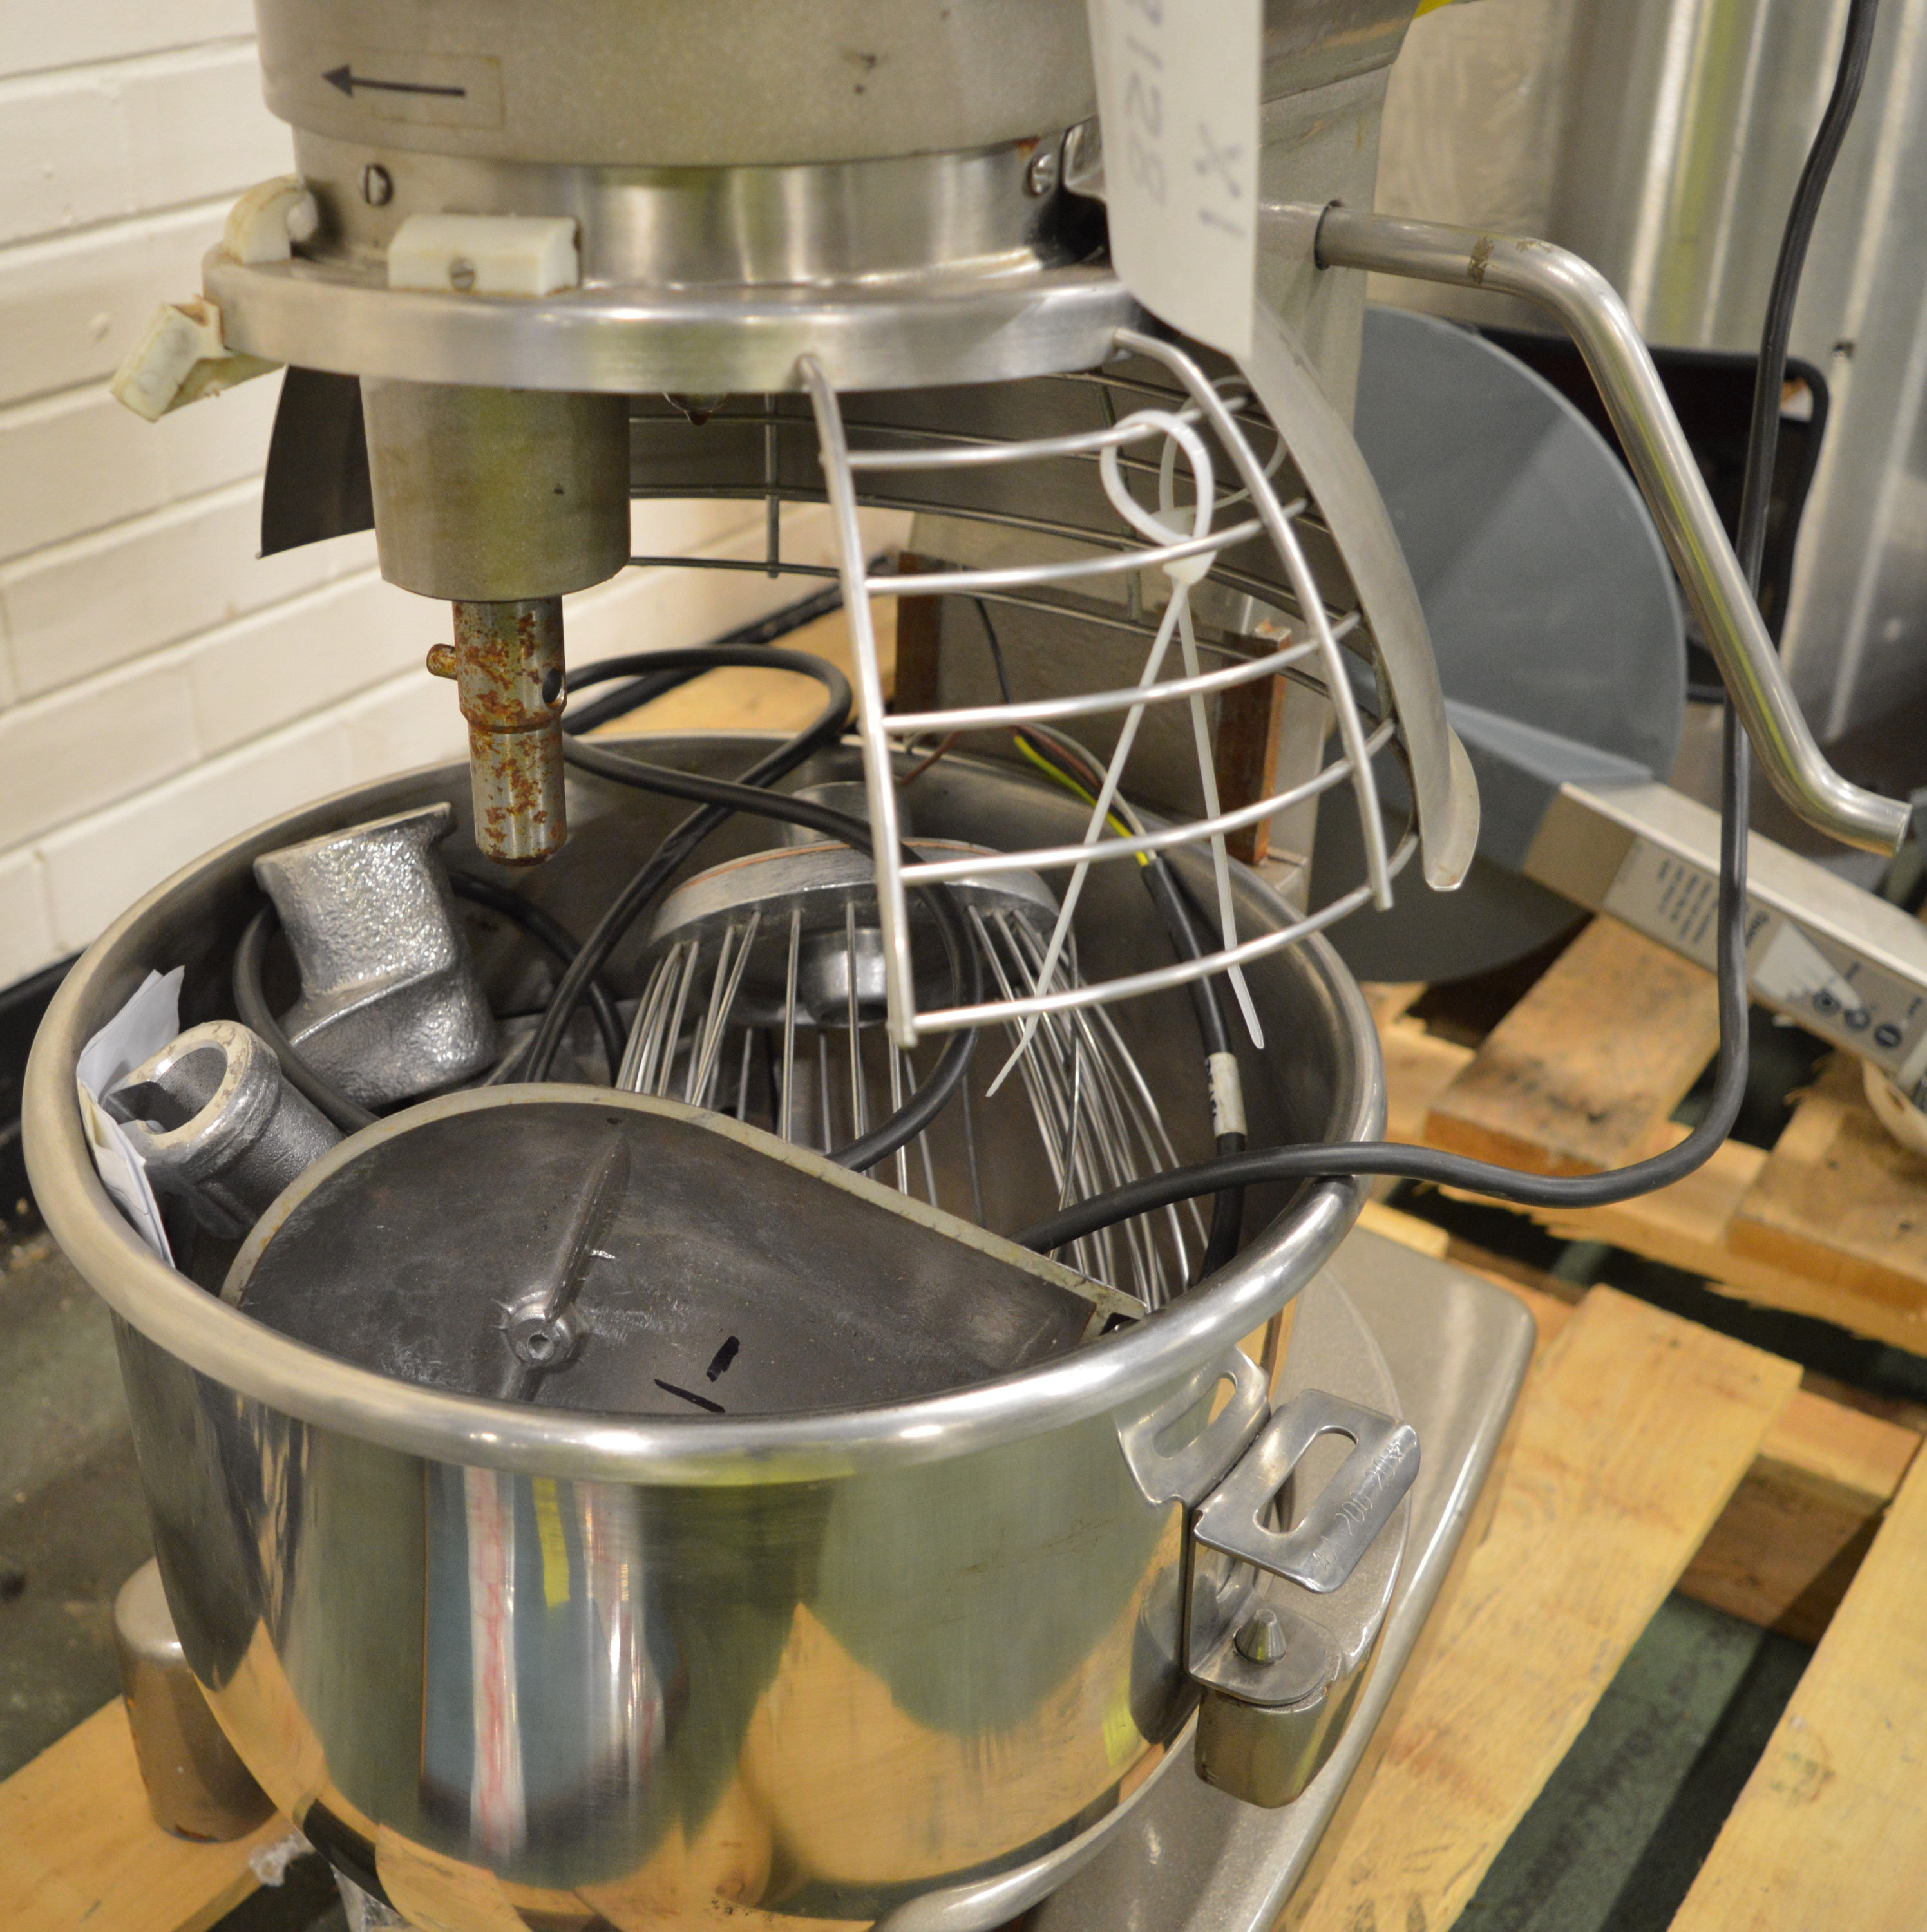 Lot 19 - Hobart A200 Food Mixer.